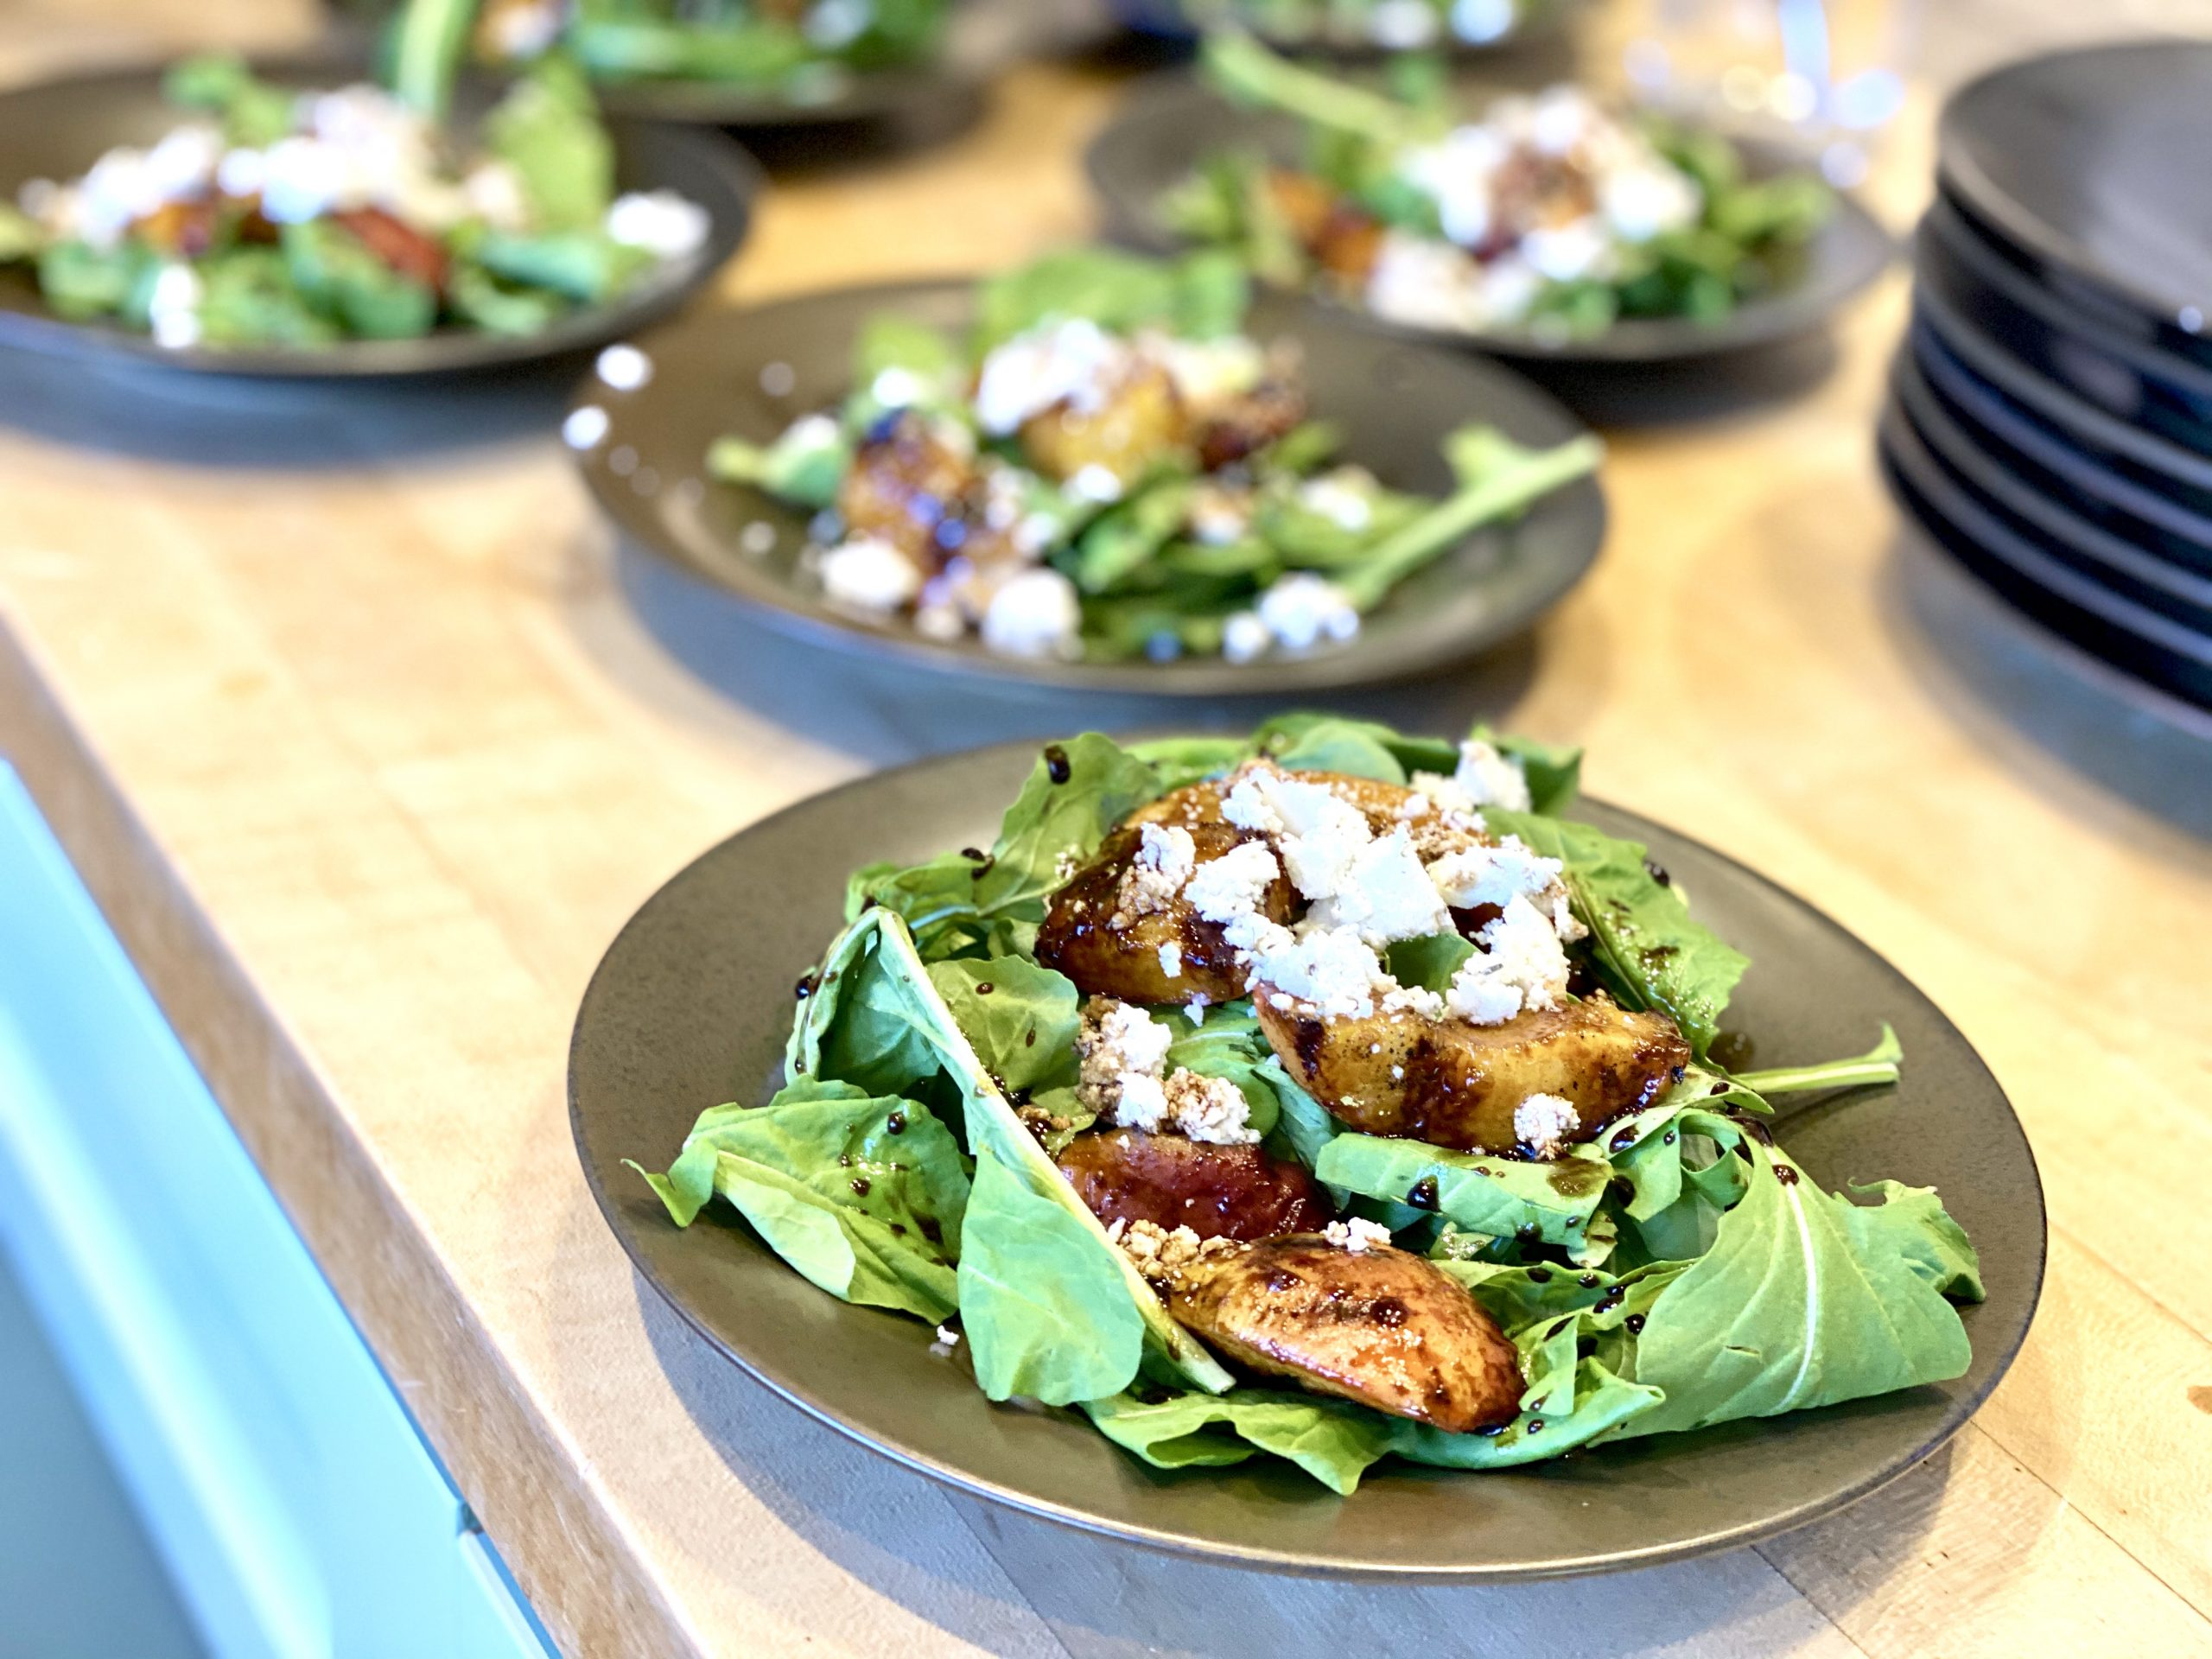 Homemade goat cheese topping a grilled peach salad with arugula and balsamic vinaigrette.